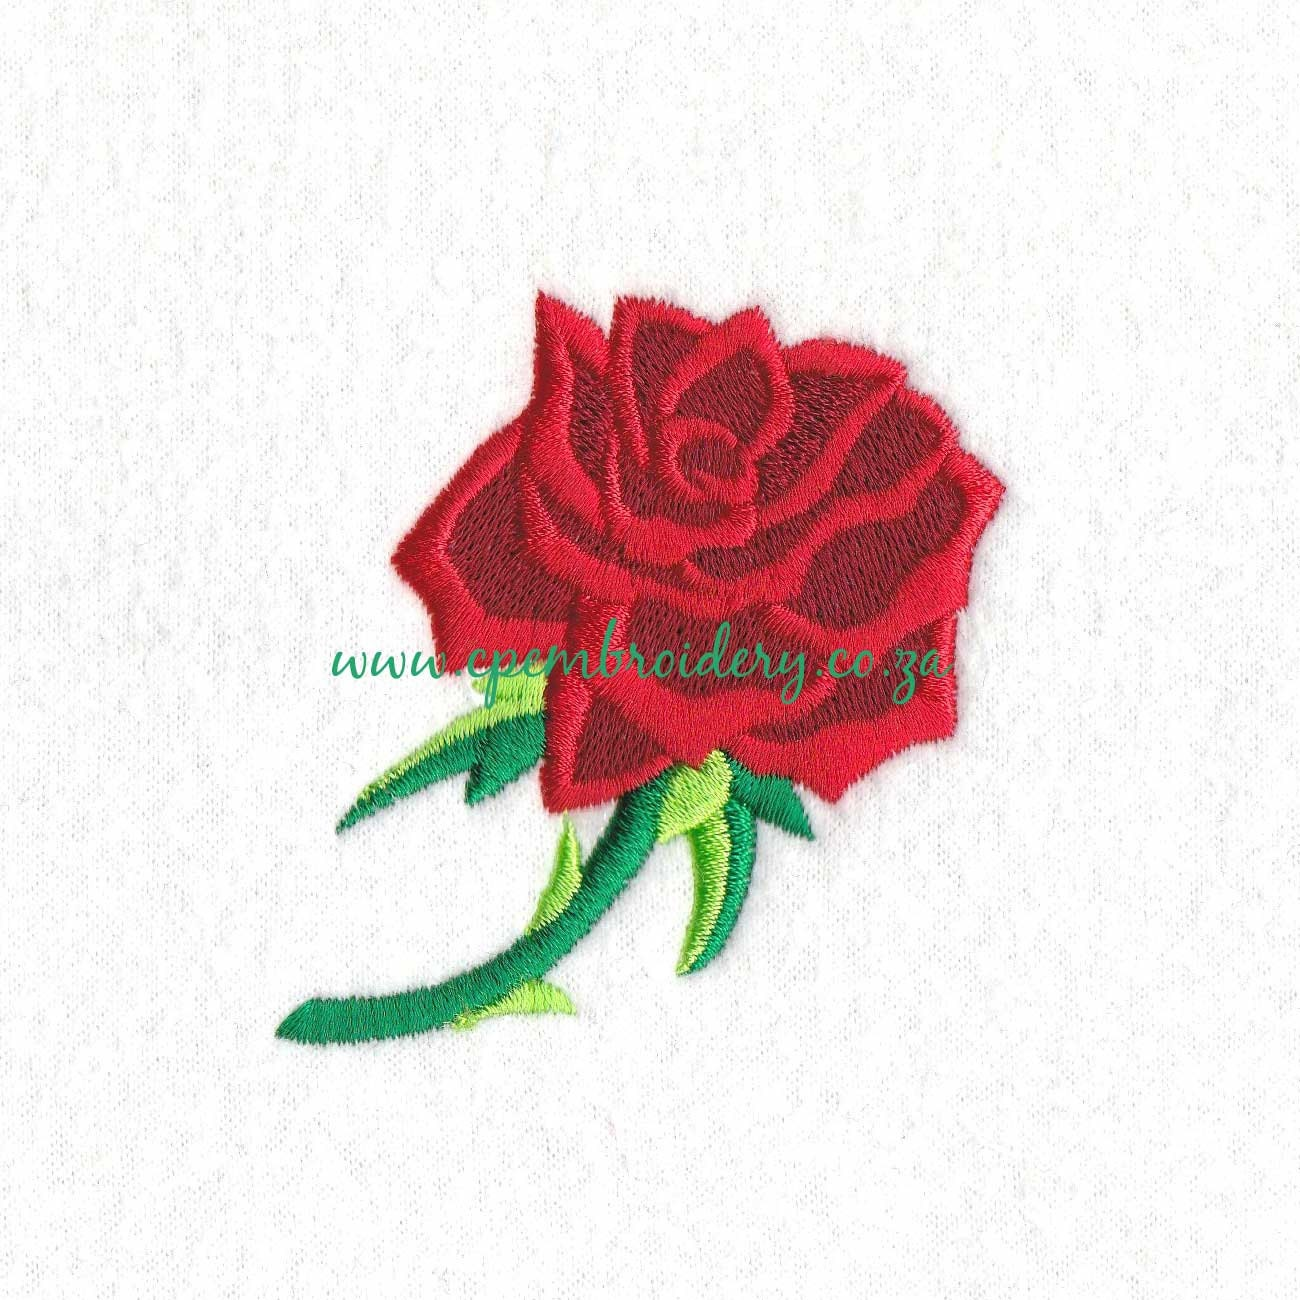 Single red rose with green stem machine embroidery download